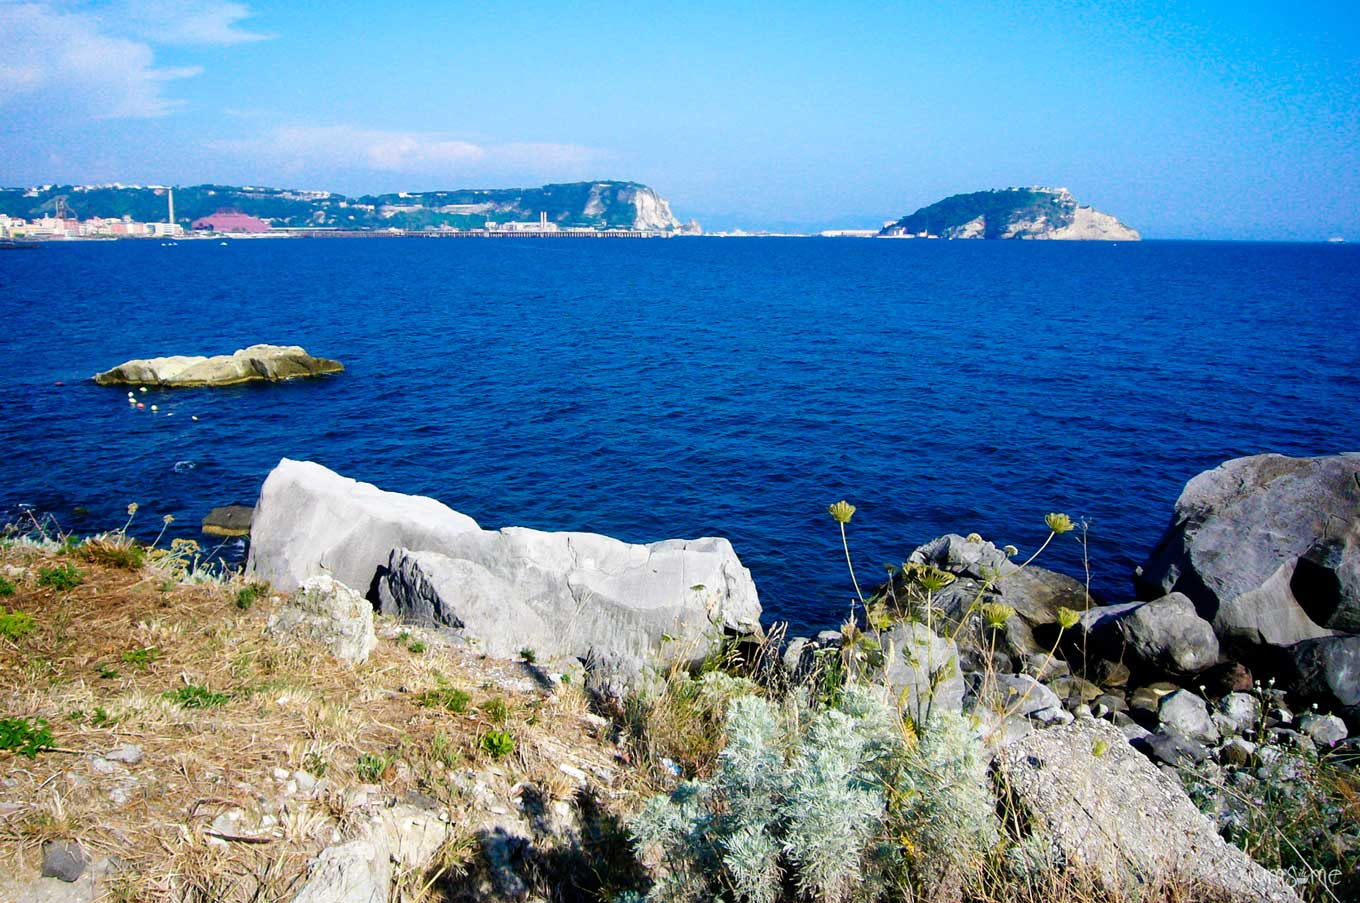 view across the Tyrrhenian Sea, Pozzuoli | | yumsome.com